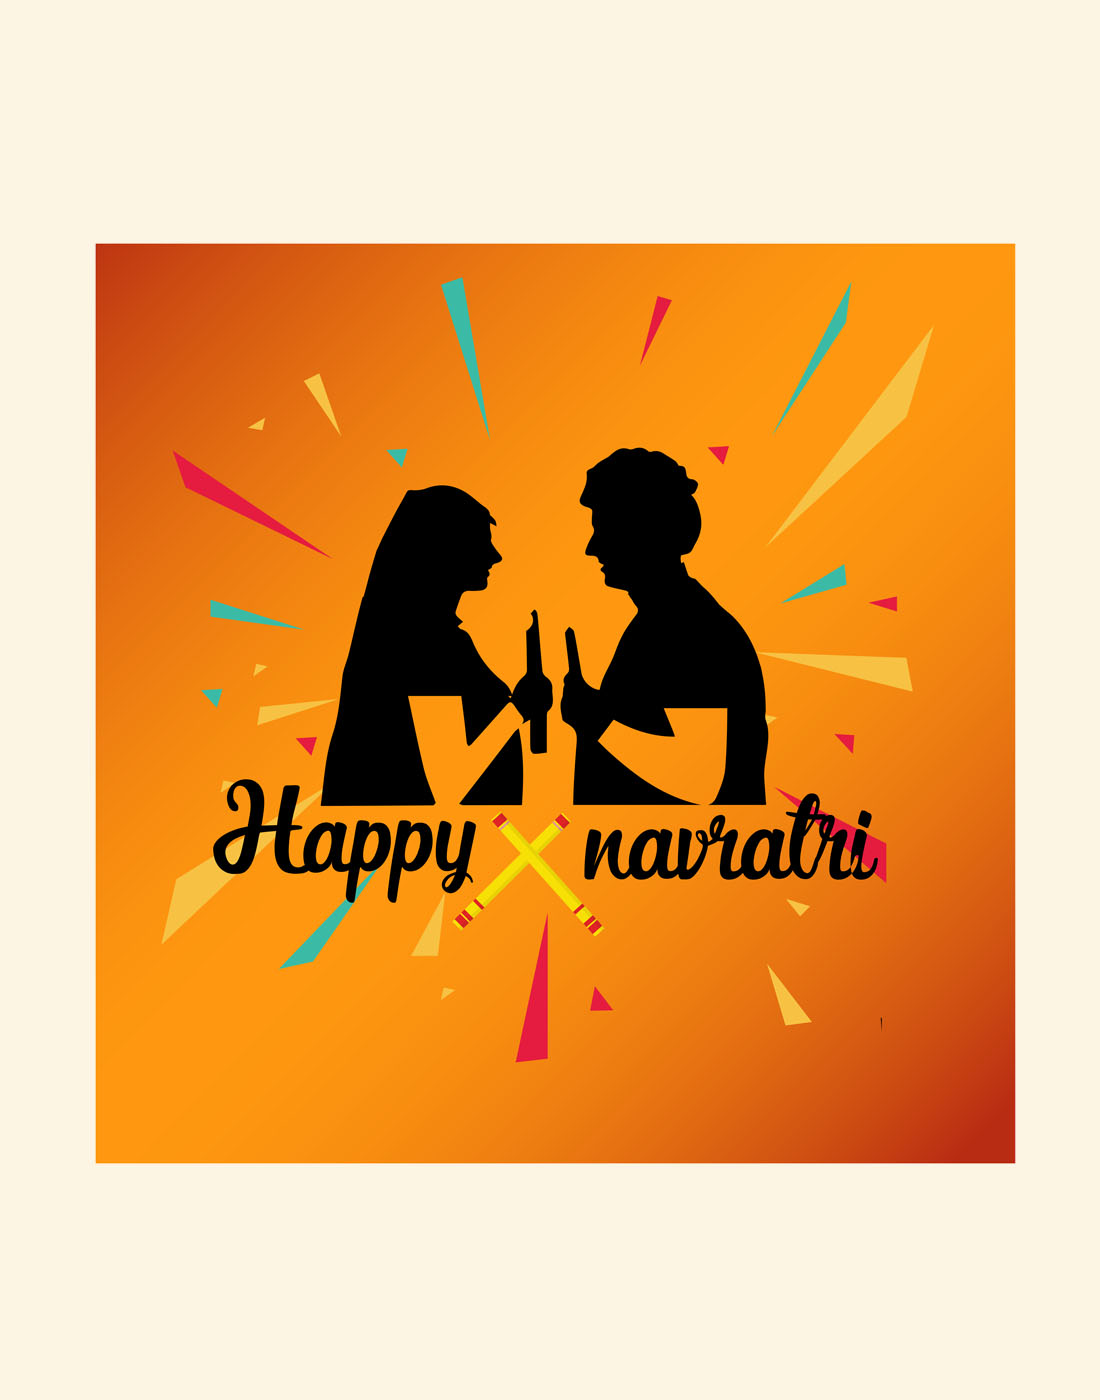 navratri couple vector